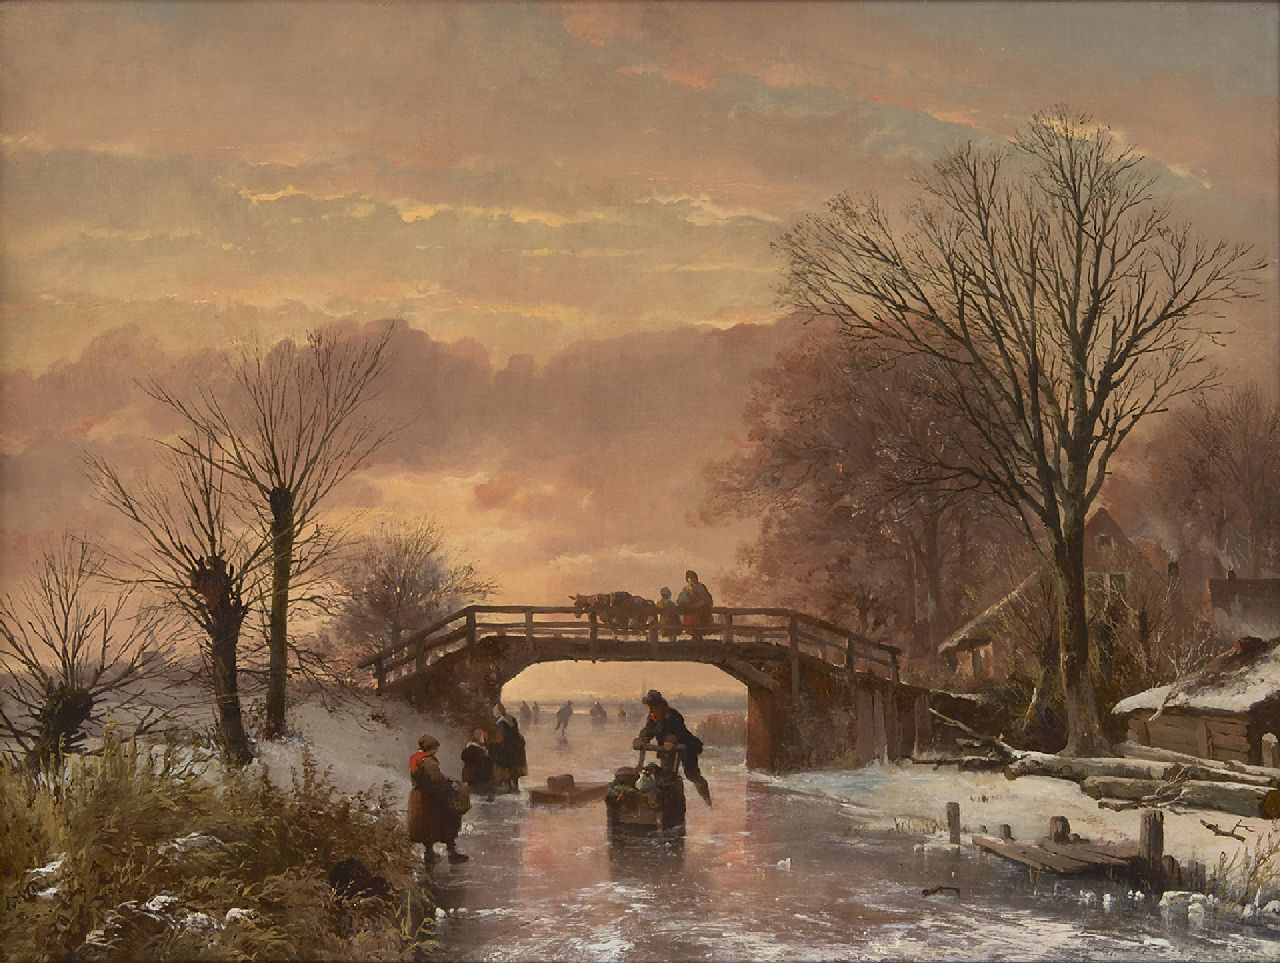 Abraham van der Wayen Pieterszen | Skating fun at sunset, oil on canvas, 48.5 x 65.3 cm, signed l.l.